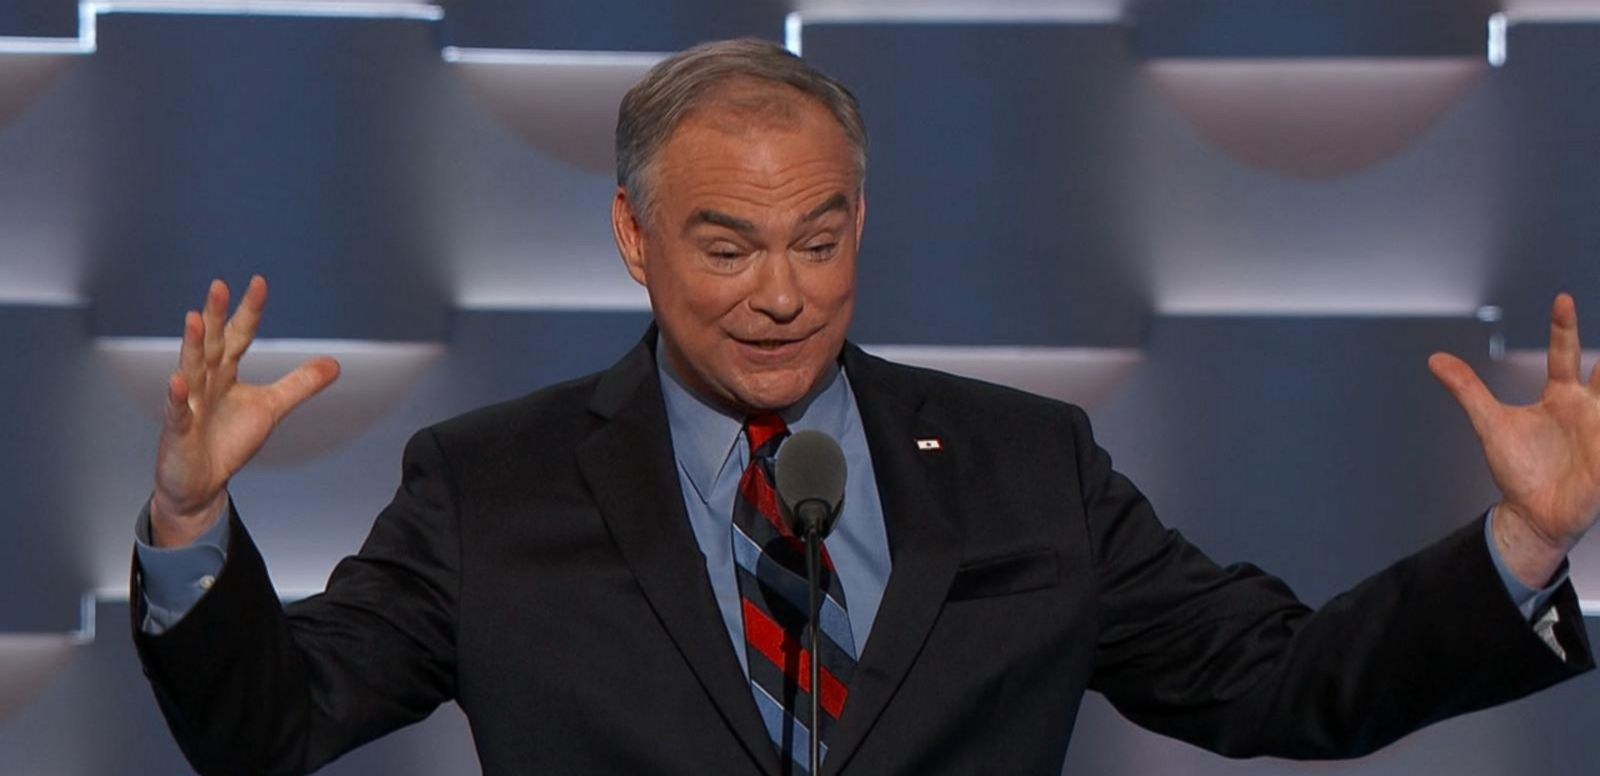 VIDEO: Tim Kaine Officially Accepts the Vice Presidential Nomination For the Democratic Party